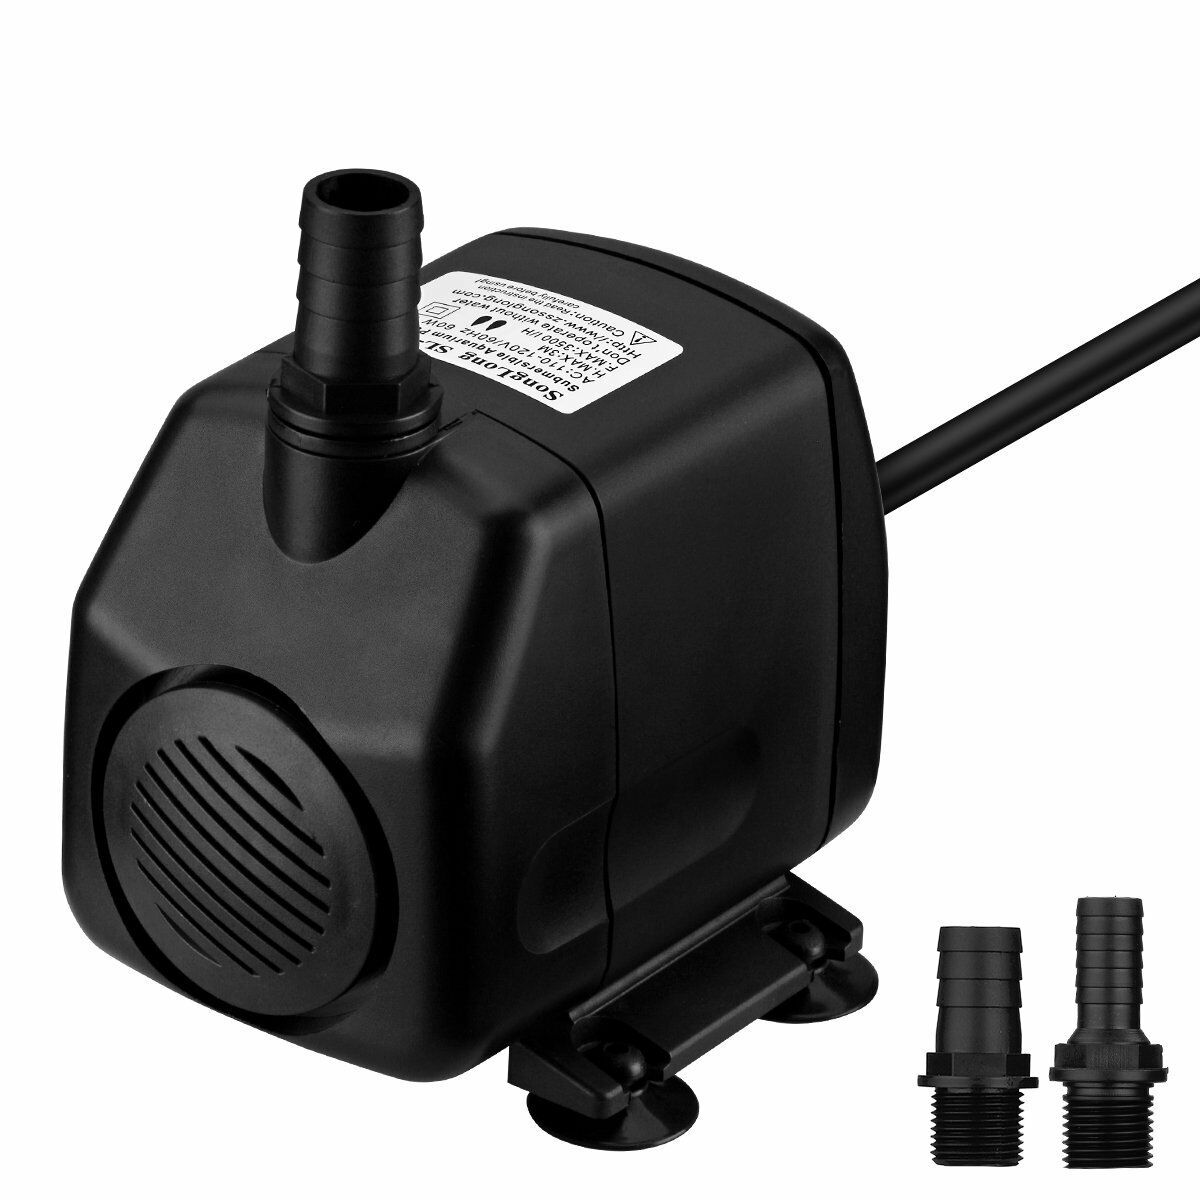 VicTsing 920 GPH Submersible Pump Foutain Water Pumps(60W, 5.9ft Power Cord, 9.8